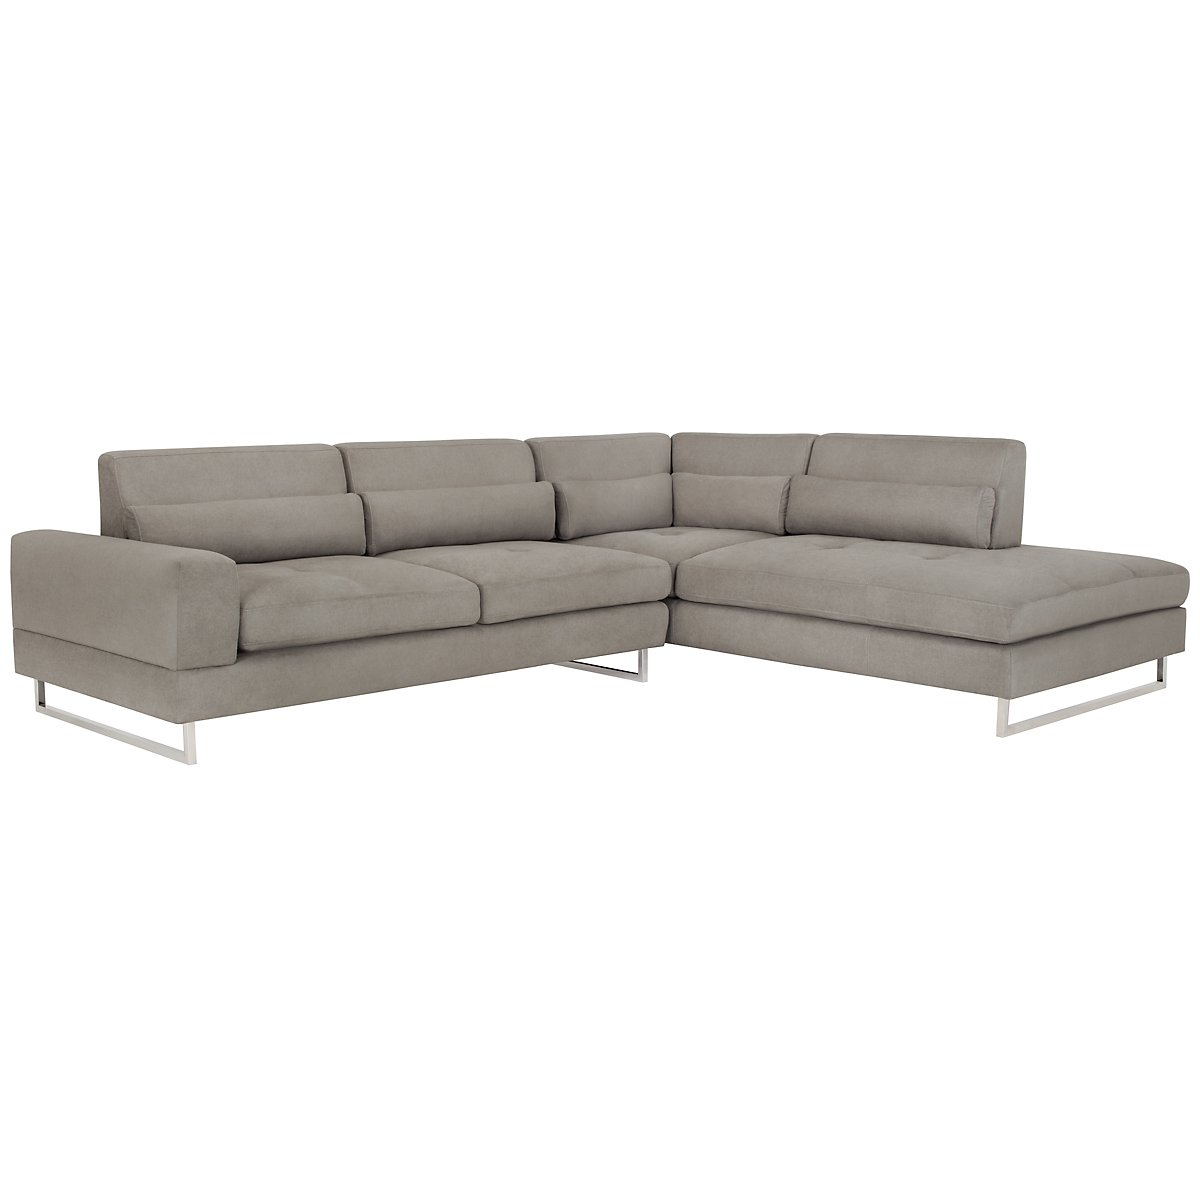 Gray chaise sofa grey sofa chaise thesofa for Gray microfiber sectional sofa with chaise